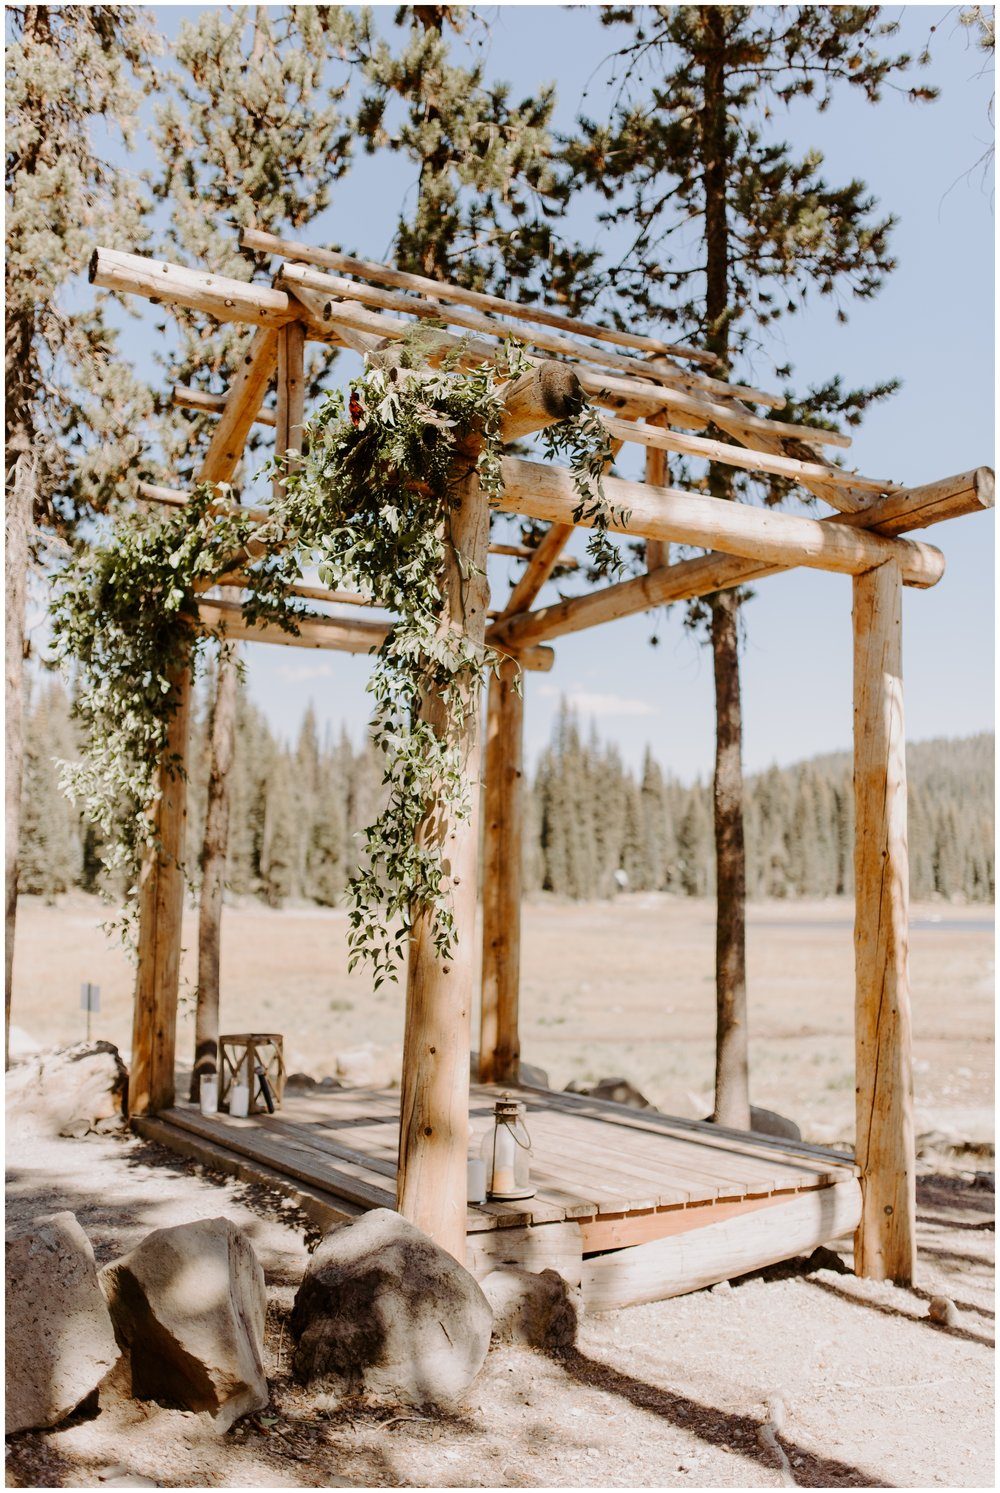 Bend Boho Campsite Wedding Eastern Oregon - Jessica Heron Images_0029.jpg